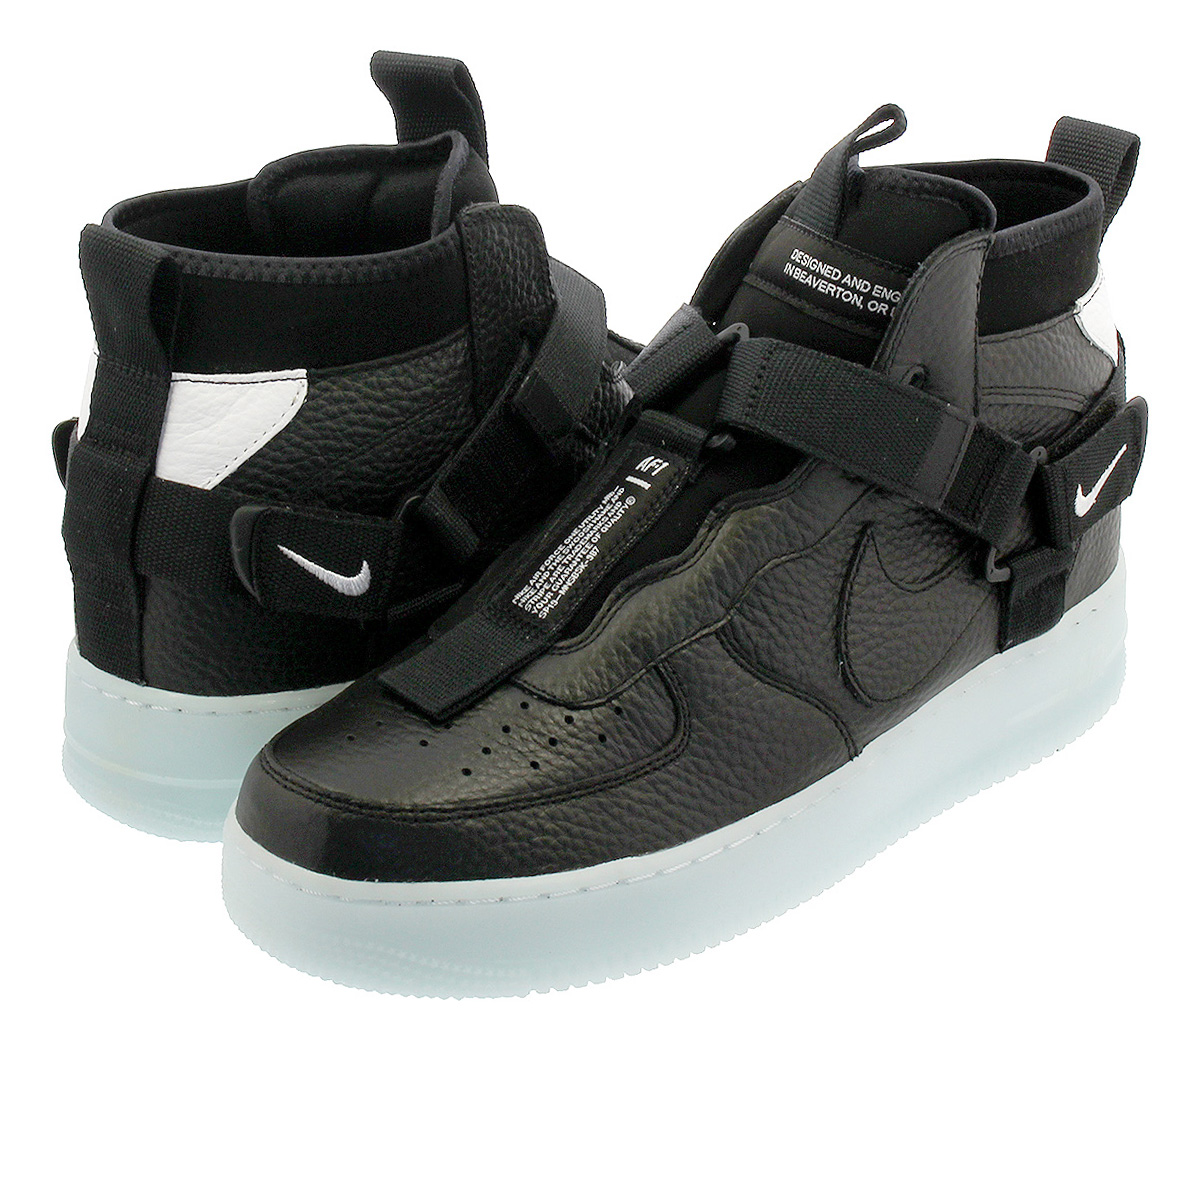 NIKE AIR FORCE 1 MID UTILITY Nike air force 1 mid utility BLACKHALF BLUEWHITE aq9758 001